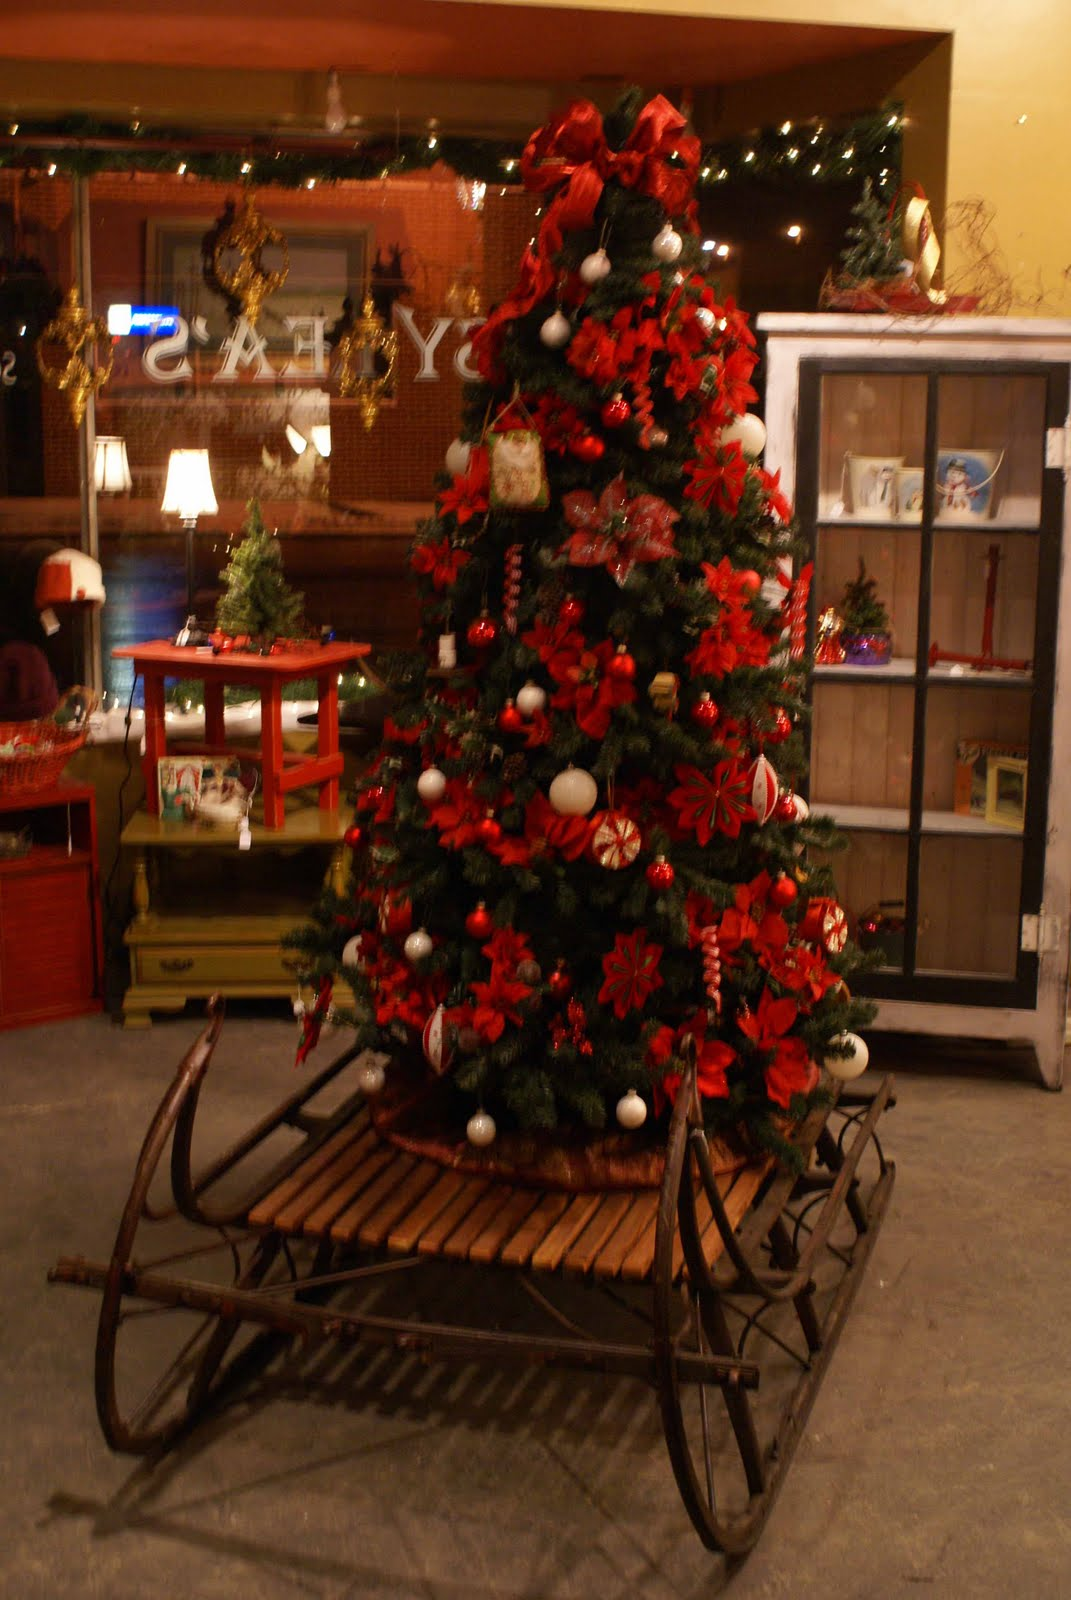 Hogs And Roses Its Already Christmas At Gypsy Lea S